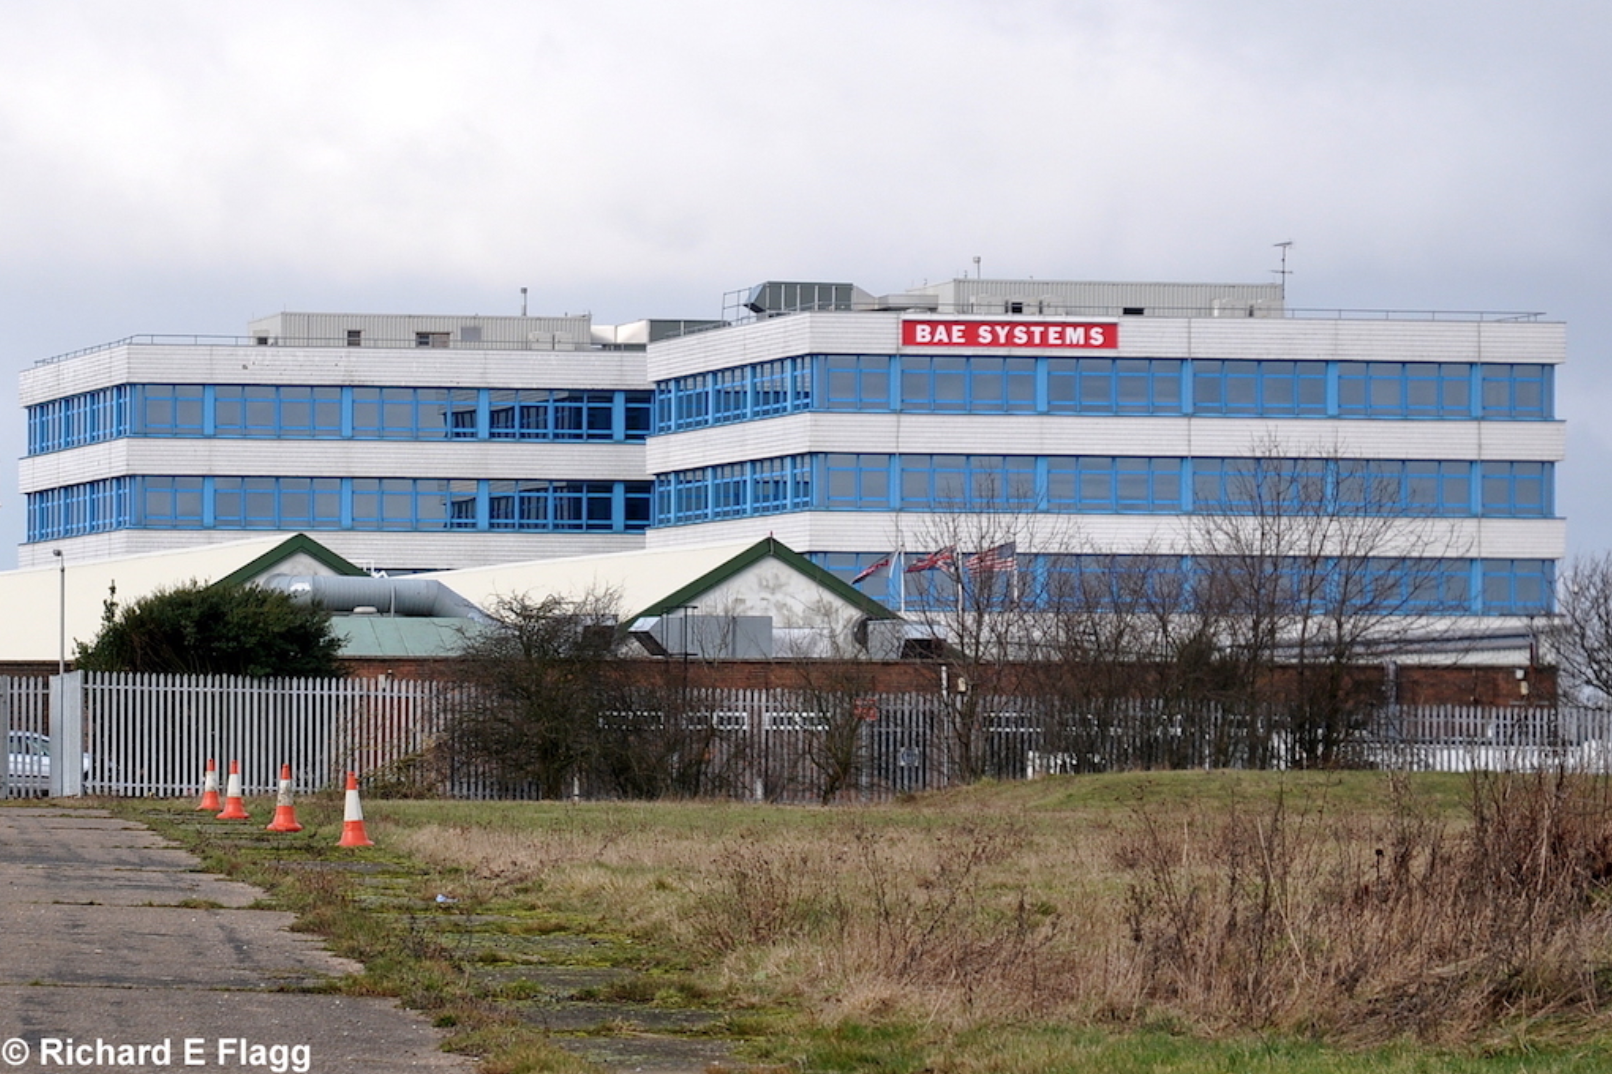 007BAE Systems Factory Site - 16 November 2013.png